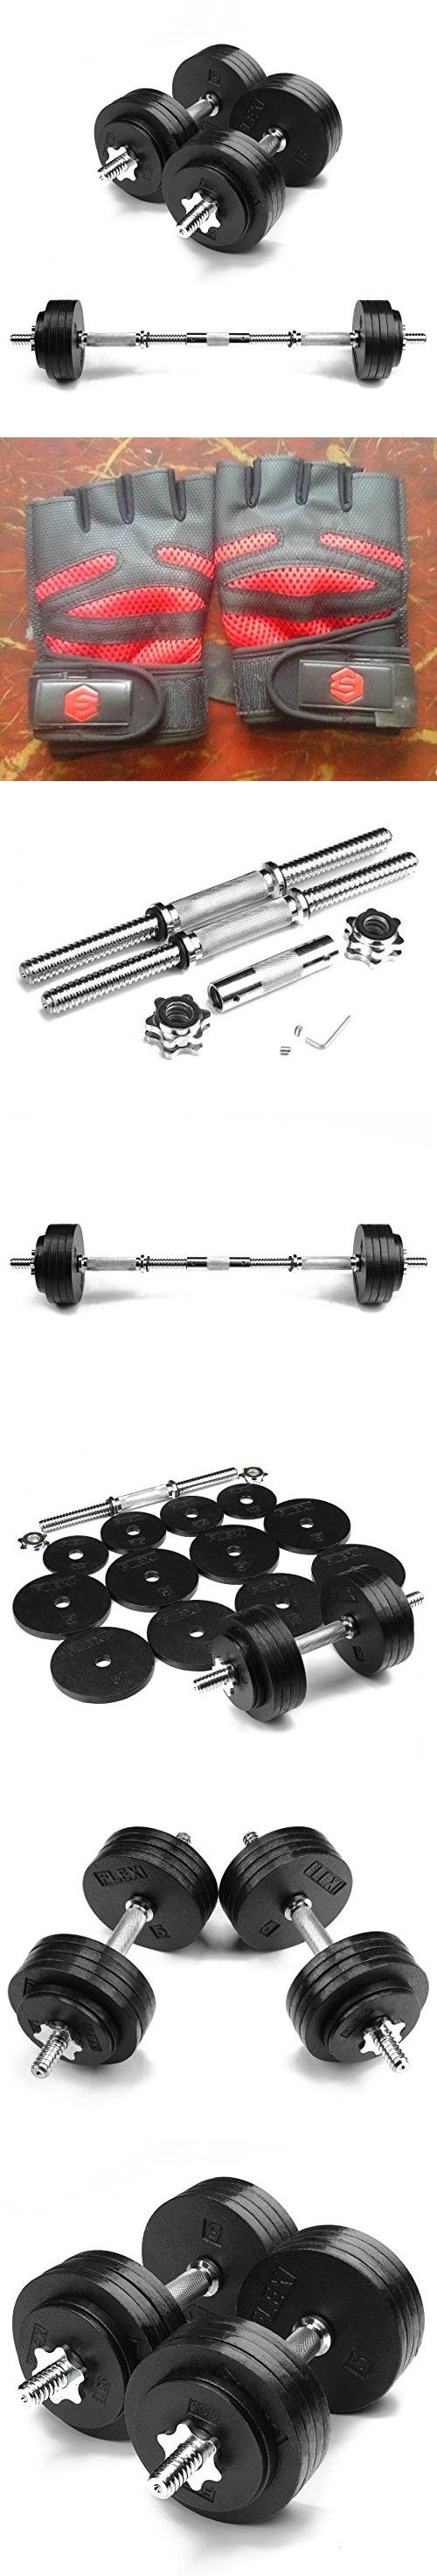 FlexiMuscle Adjustable Dumbbells Set with Dumbbells-to-Barbell Connector and Weightlifting Gloves - 105LB